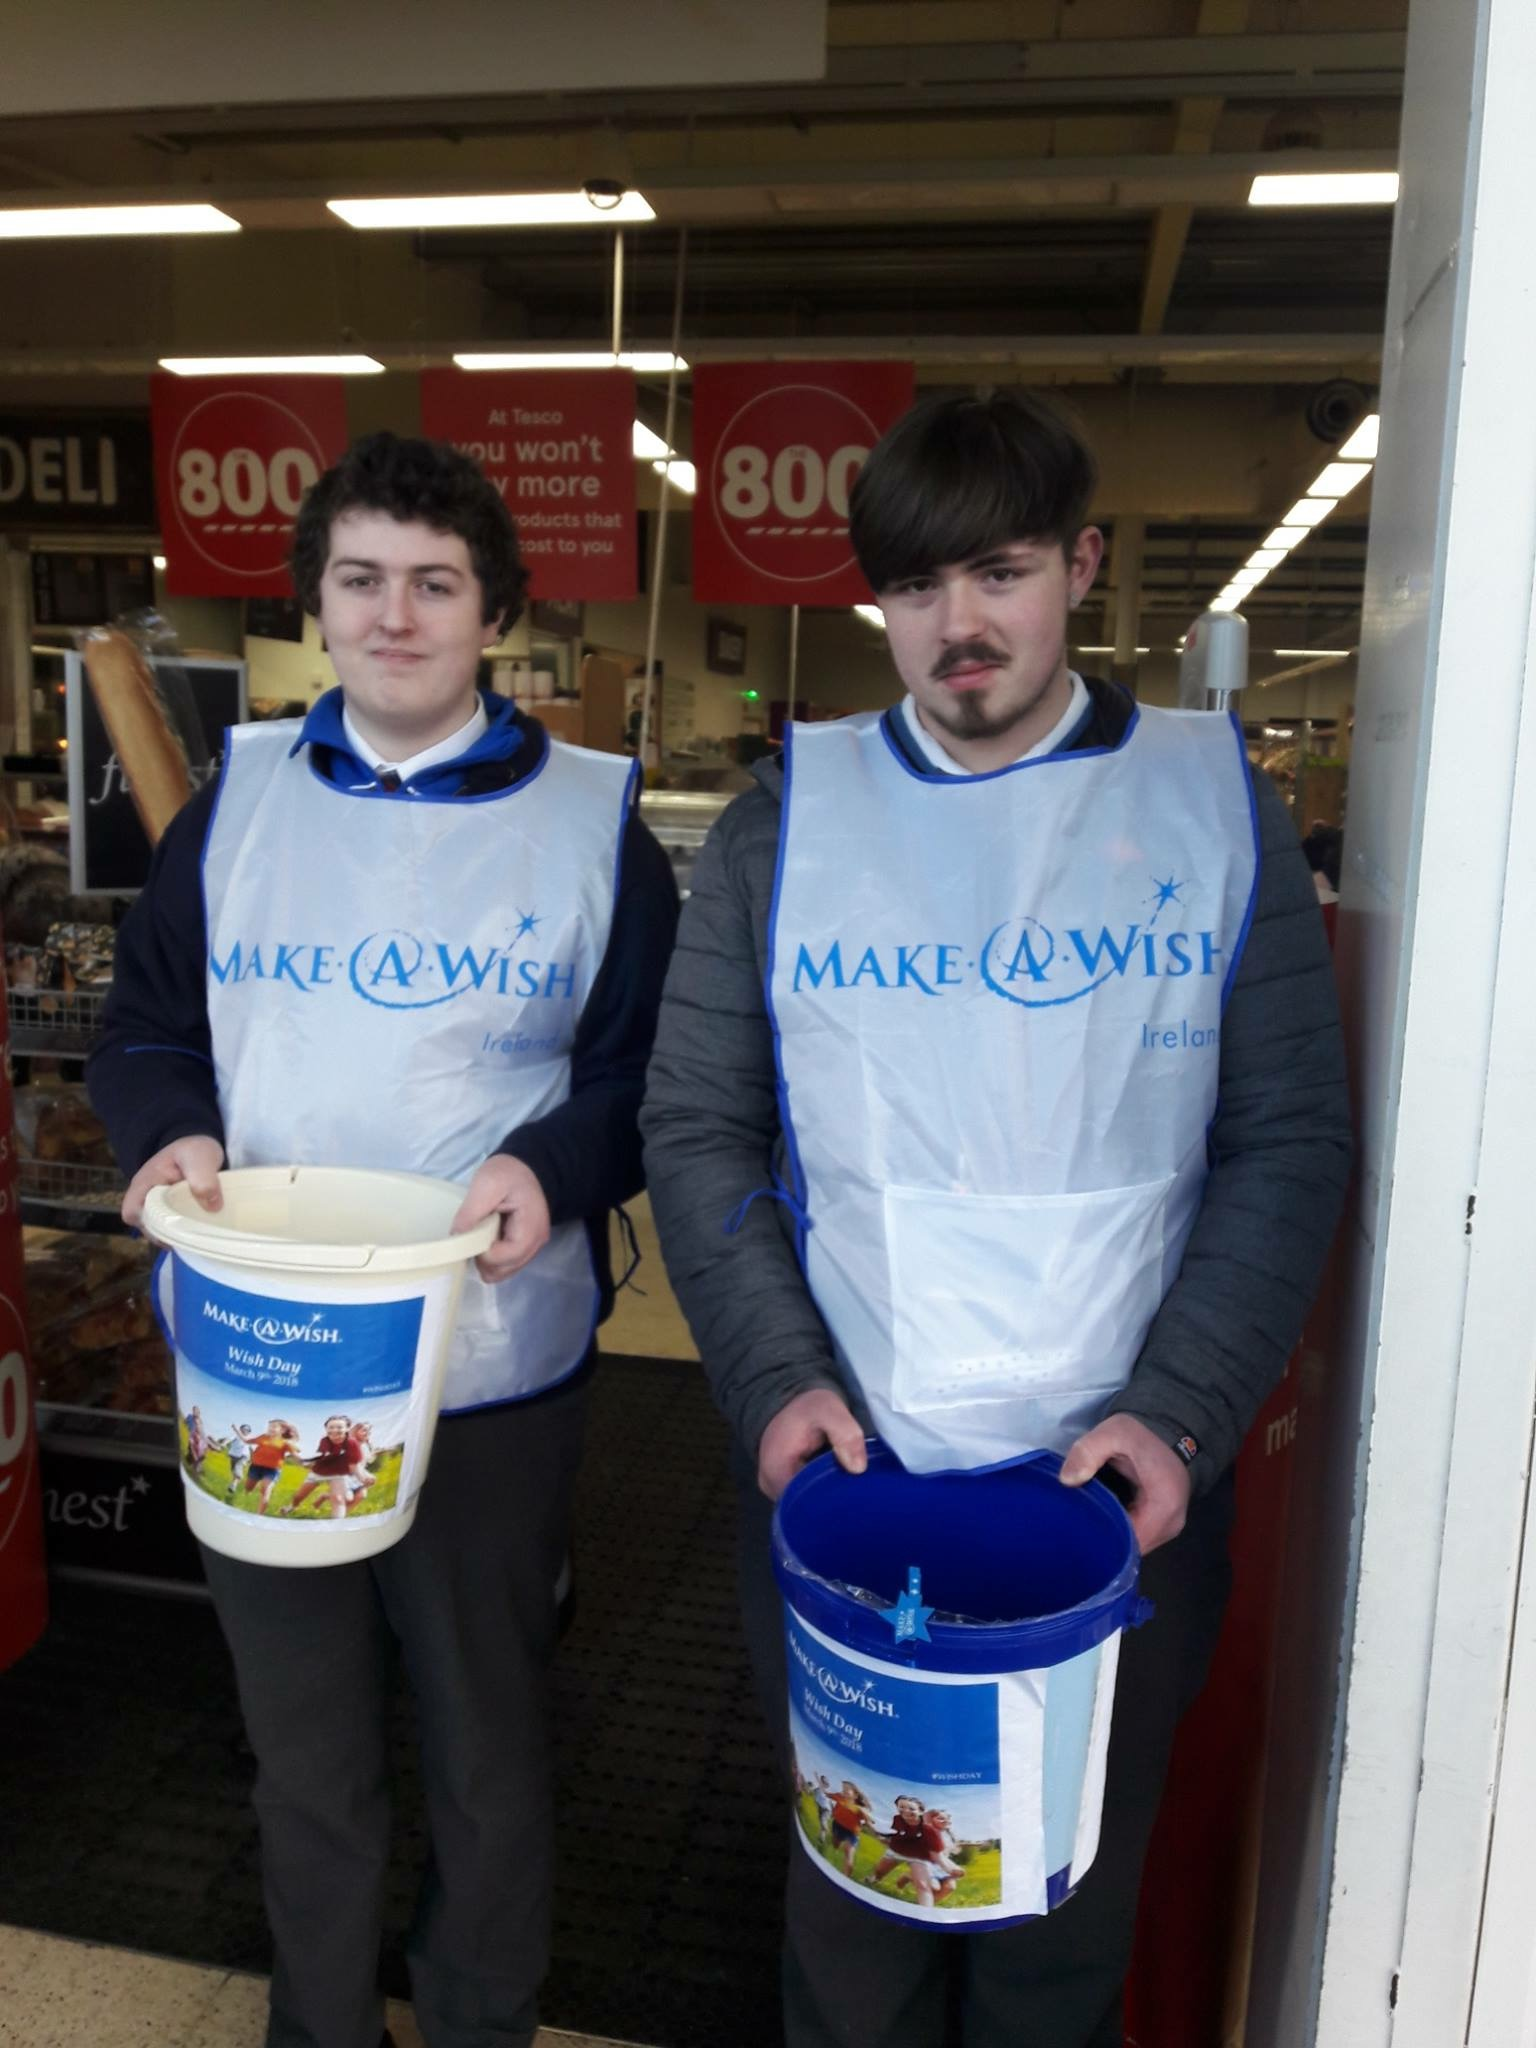 9th March 2018: Desmond College Students collect for Make A Wish Foundation